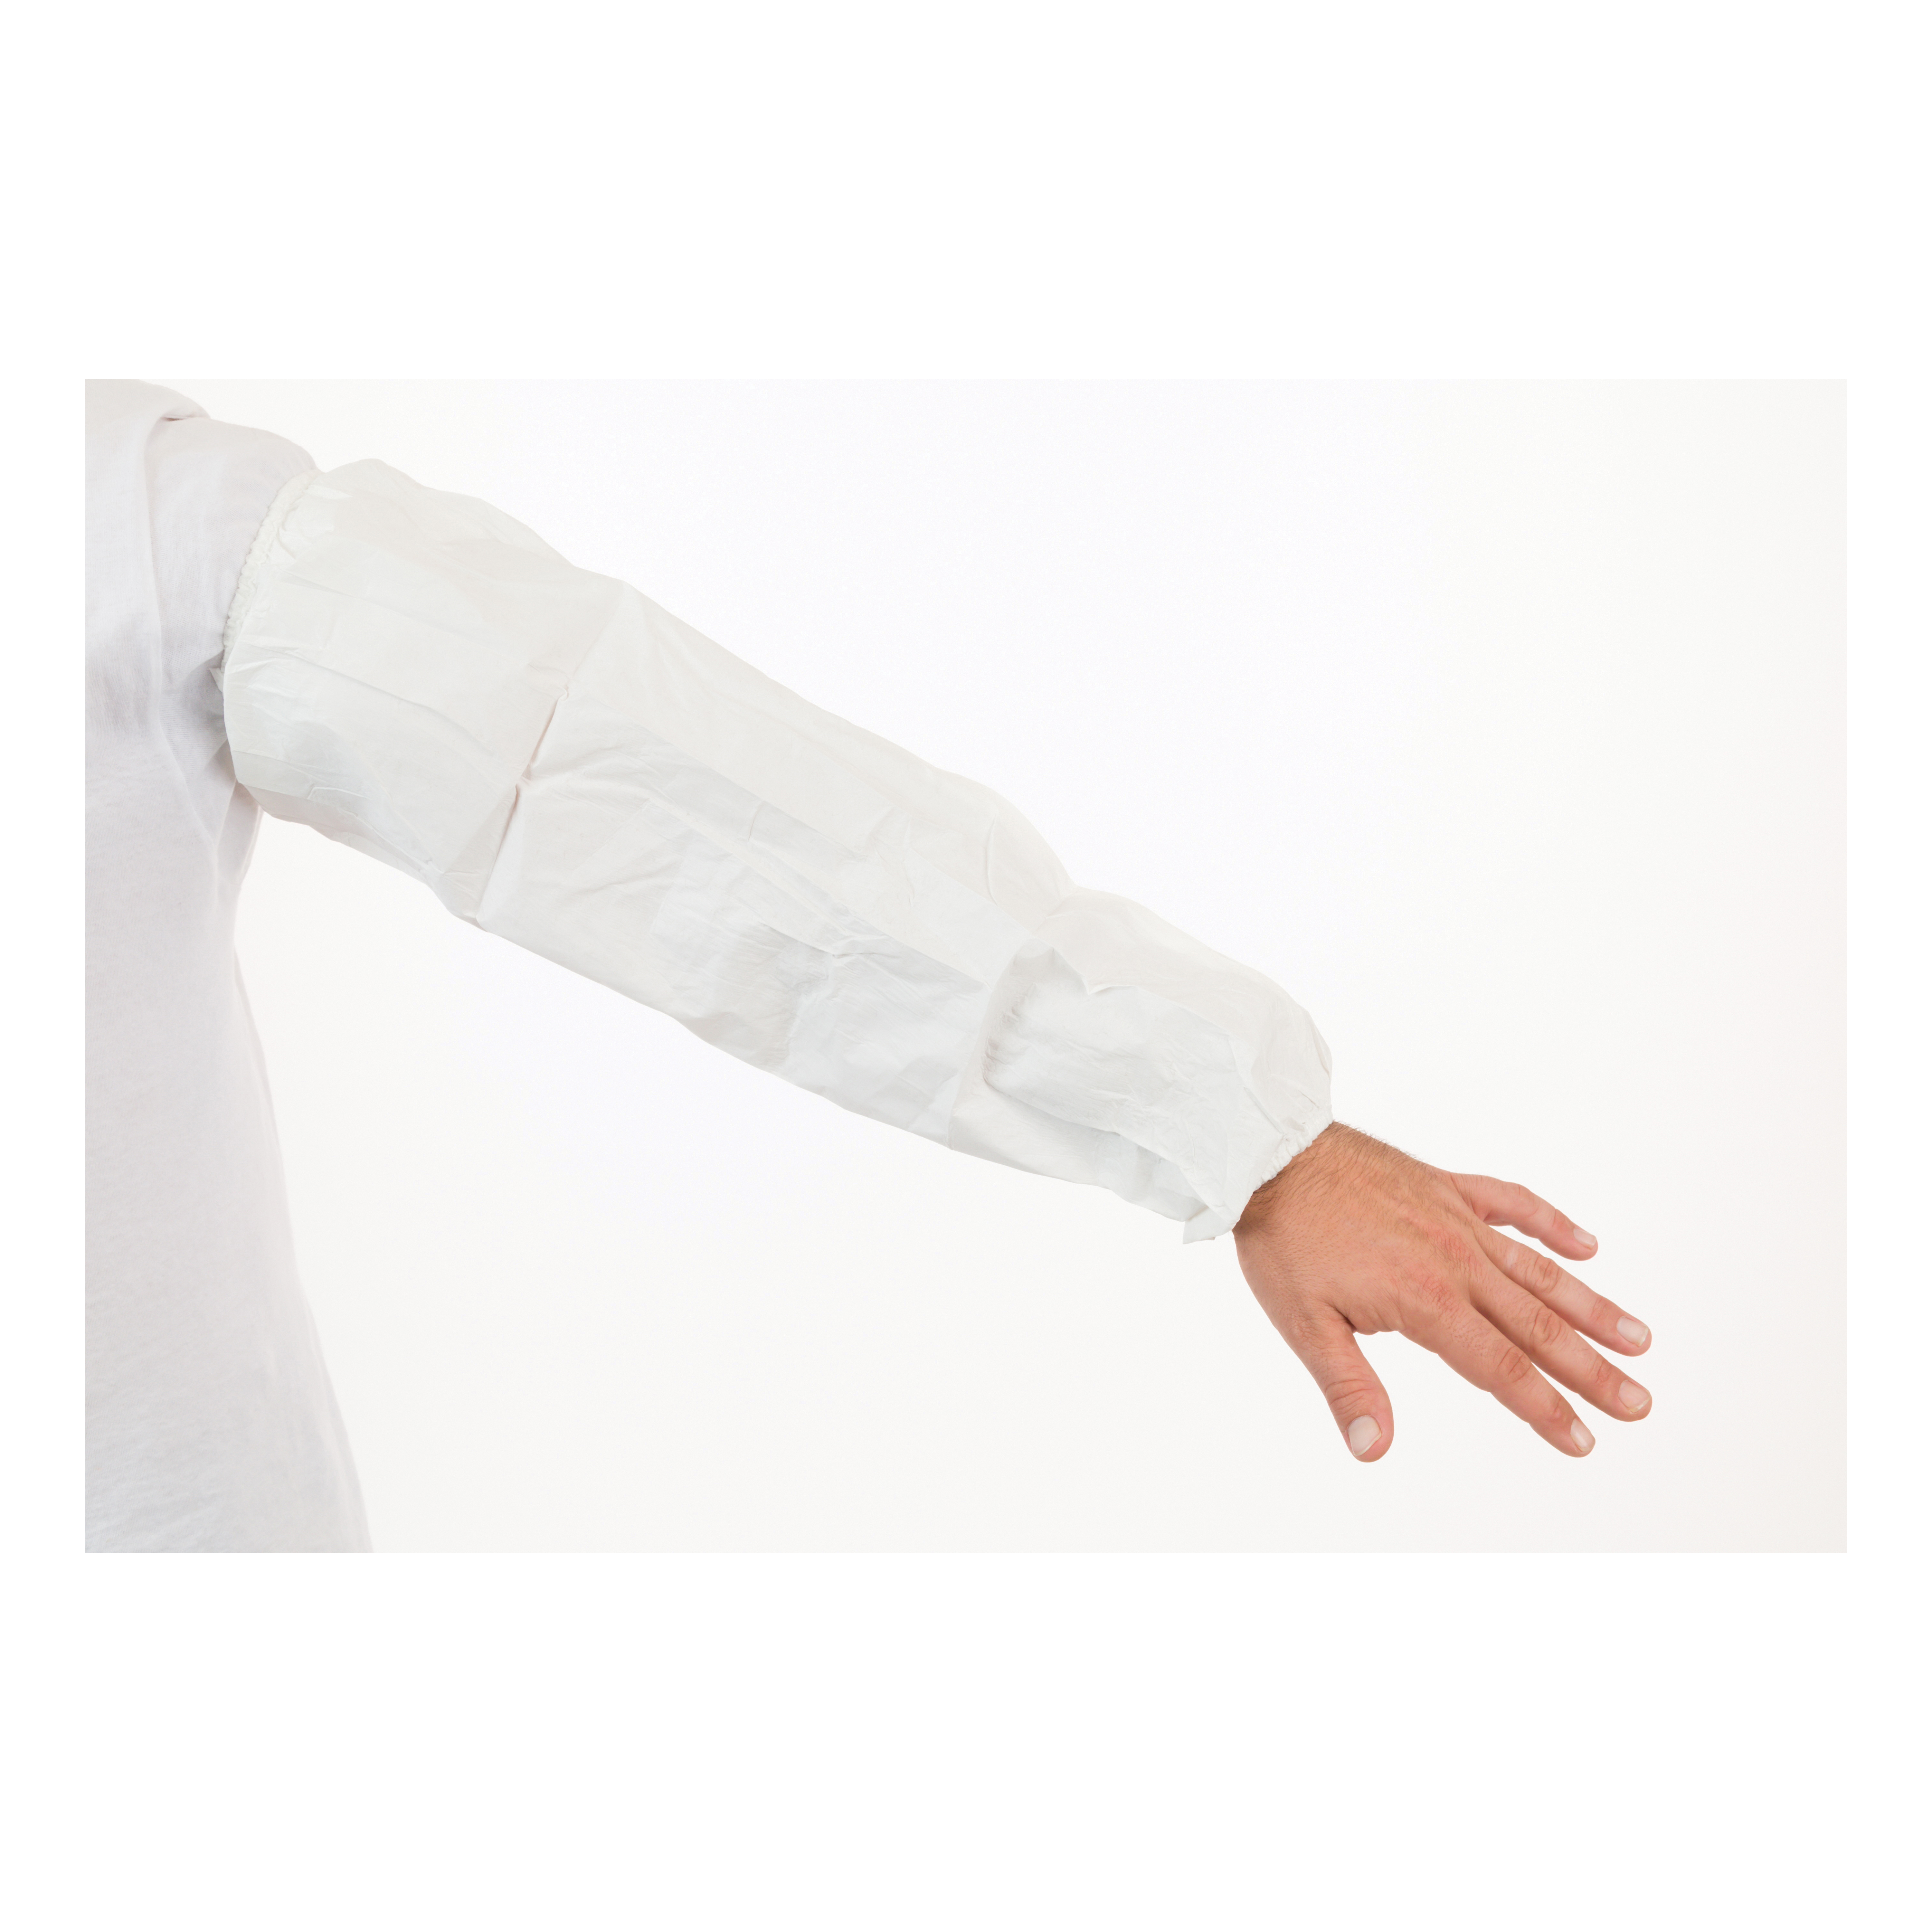 MicroGuard MP® 8065 Disposable Sleeve, Universal, 18 in L x 15 mil THK, White, Microporous Fabric